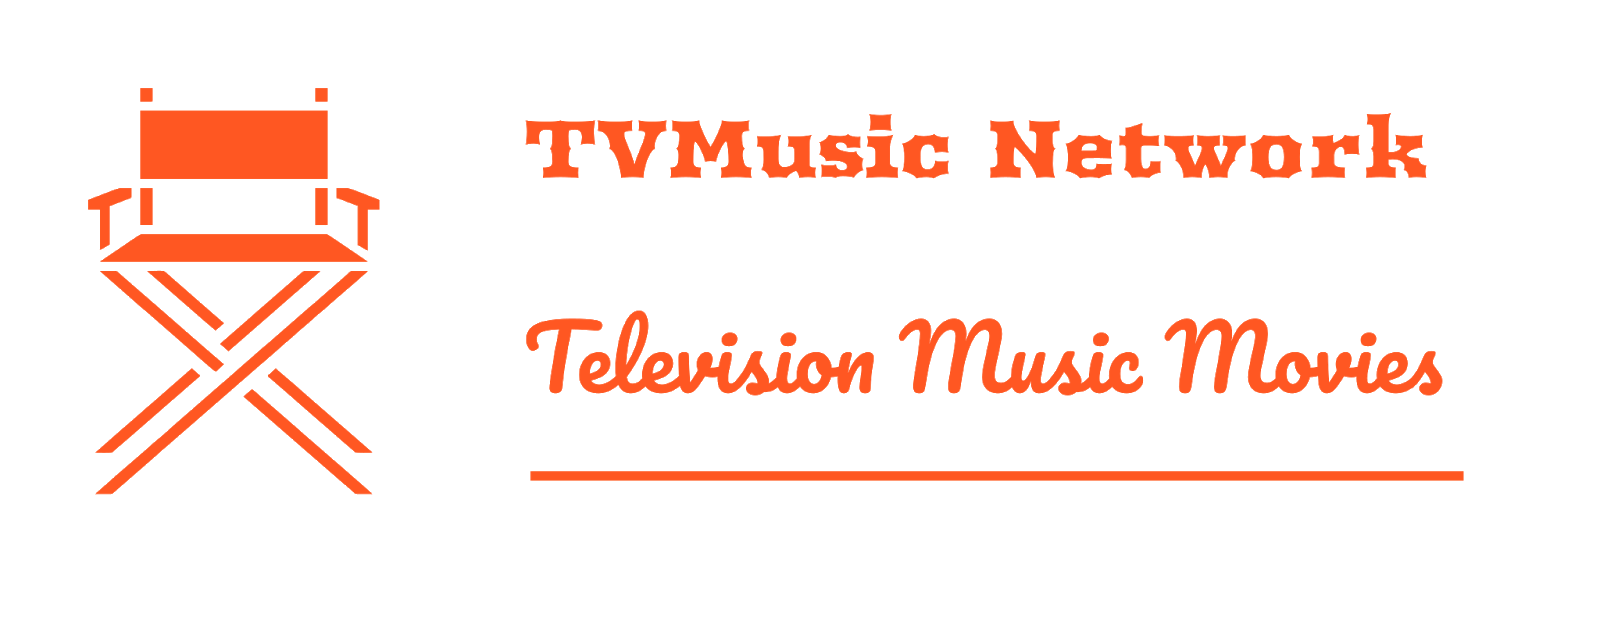 TVMusic Network - Television Music Movies